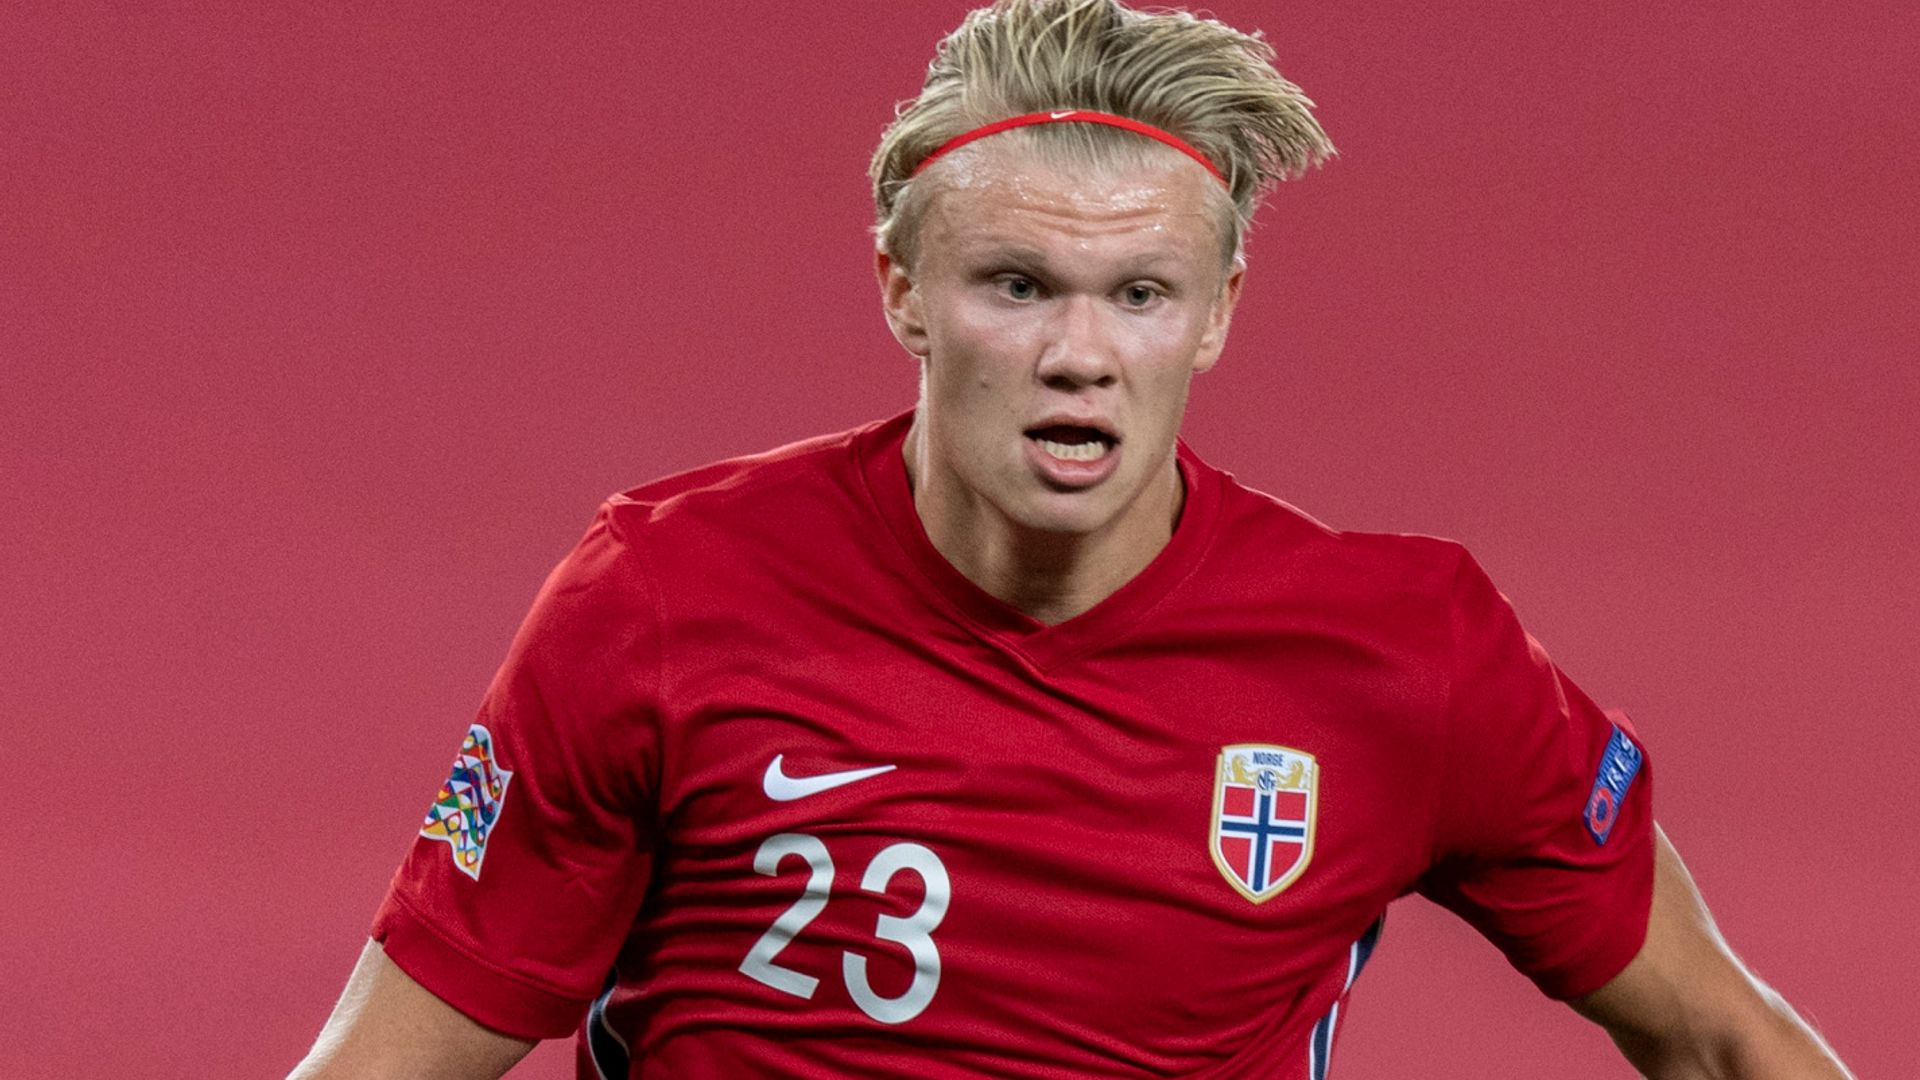 Norway coach: Haaland could be as good as Messi, Ronaldo